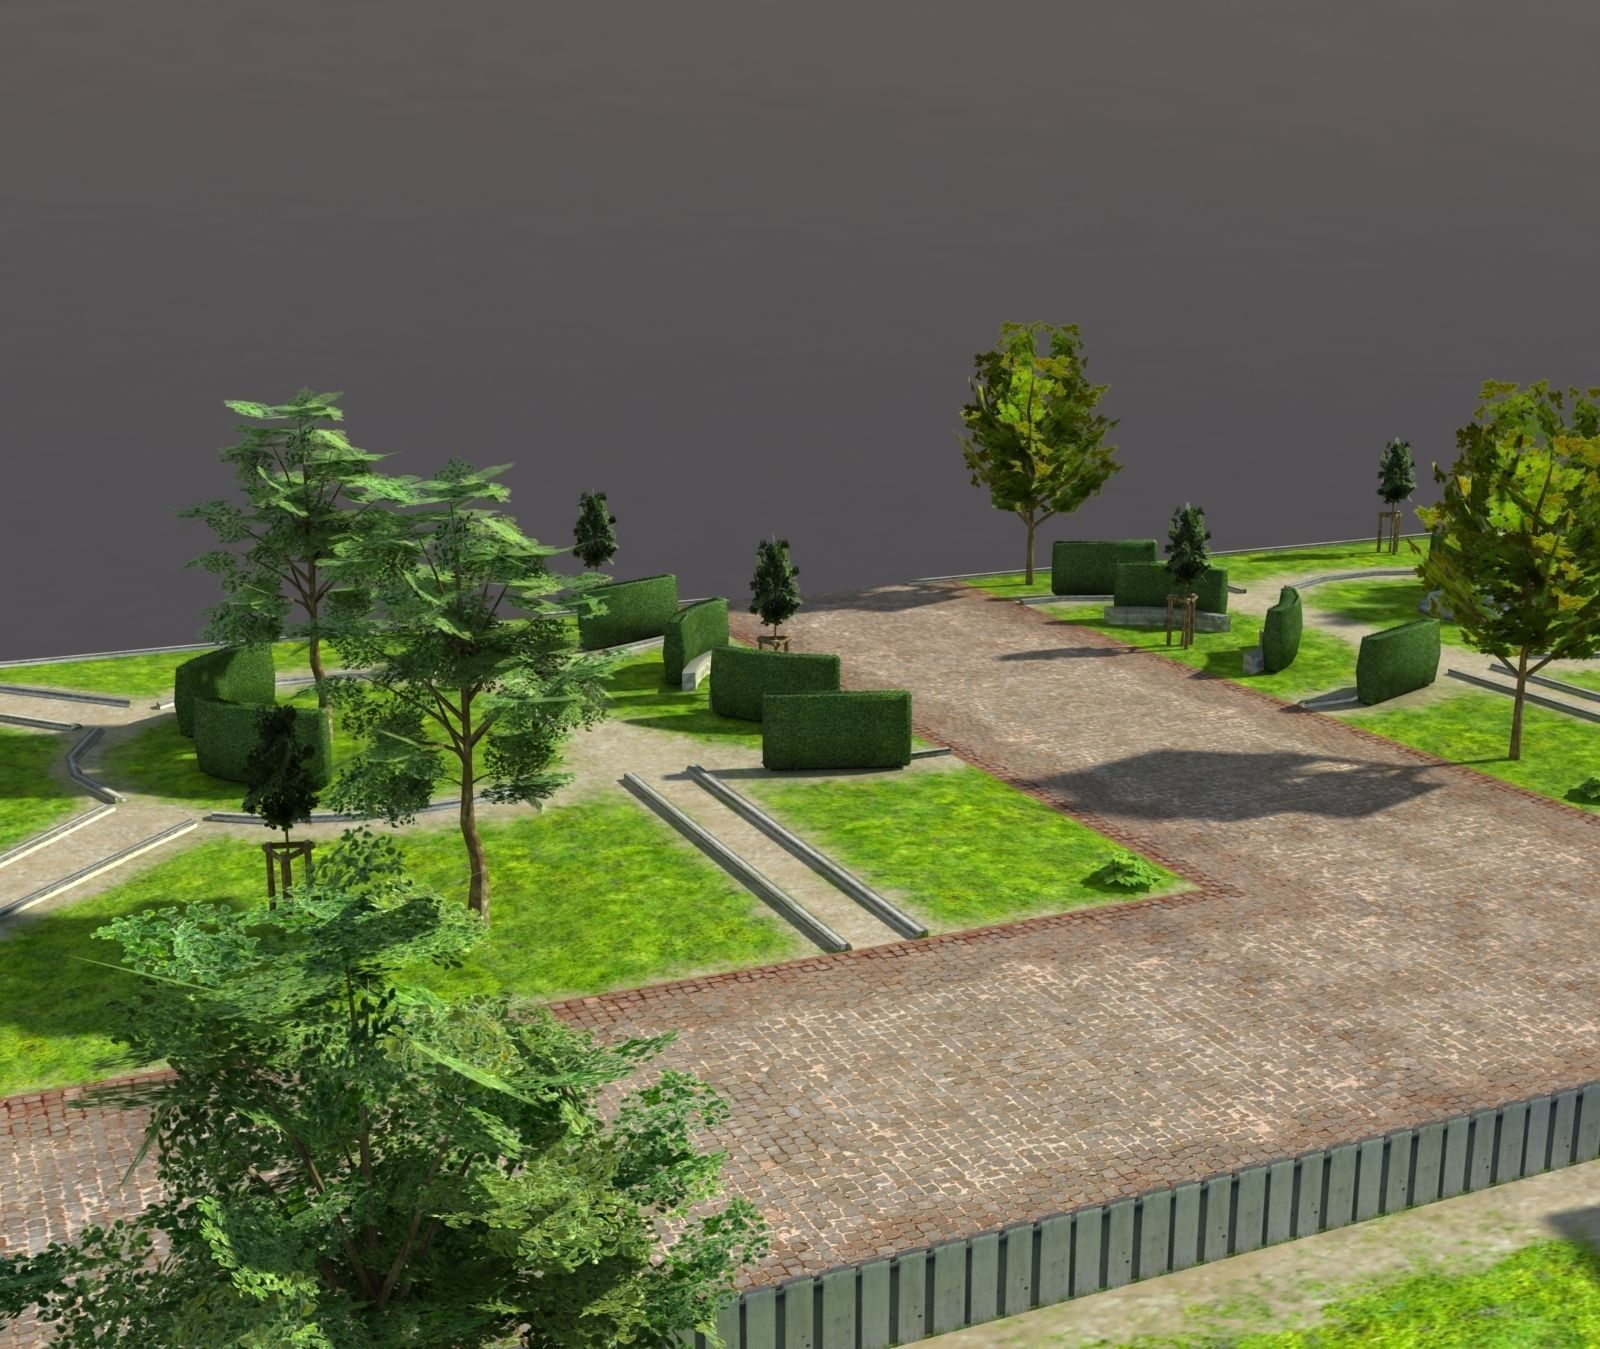 Low Poly Park 3d Model Game Ready Max Obj 3ds Lwo Lw